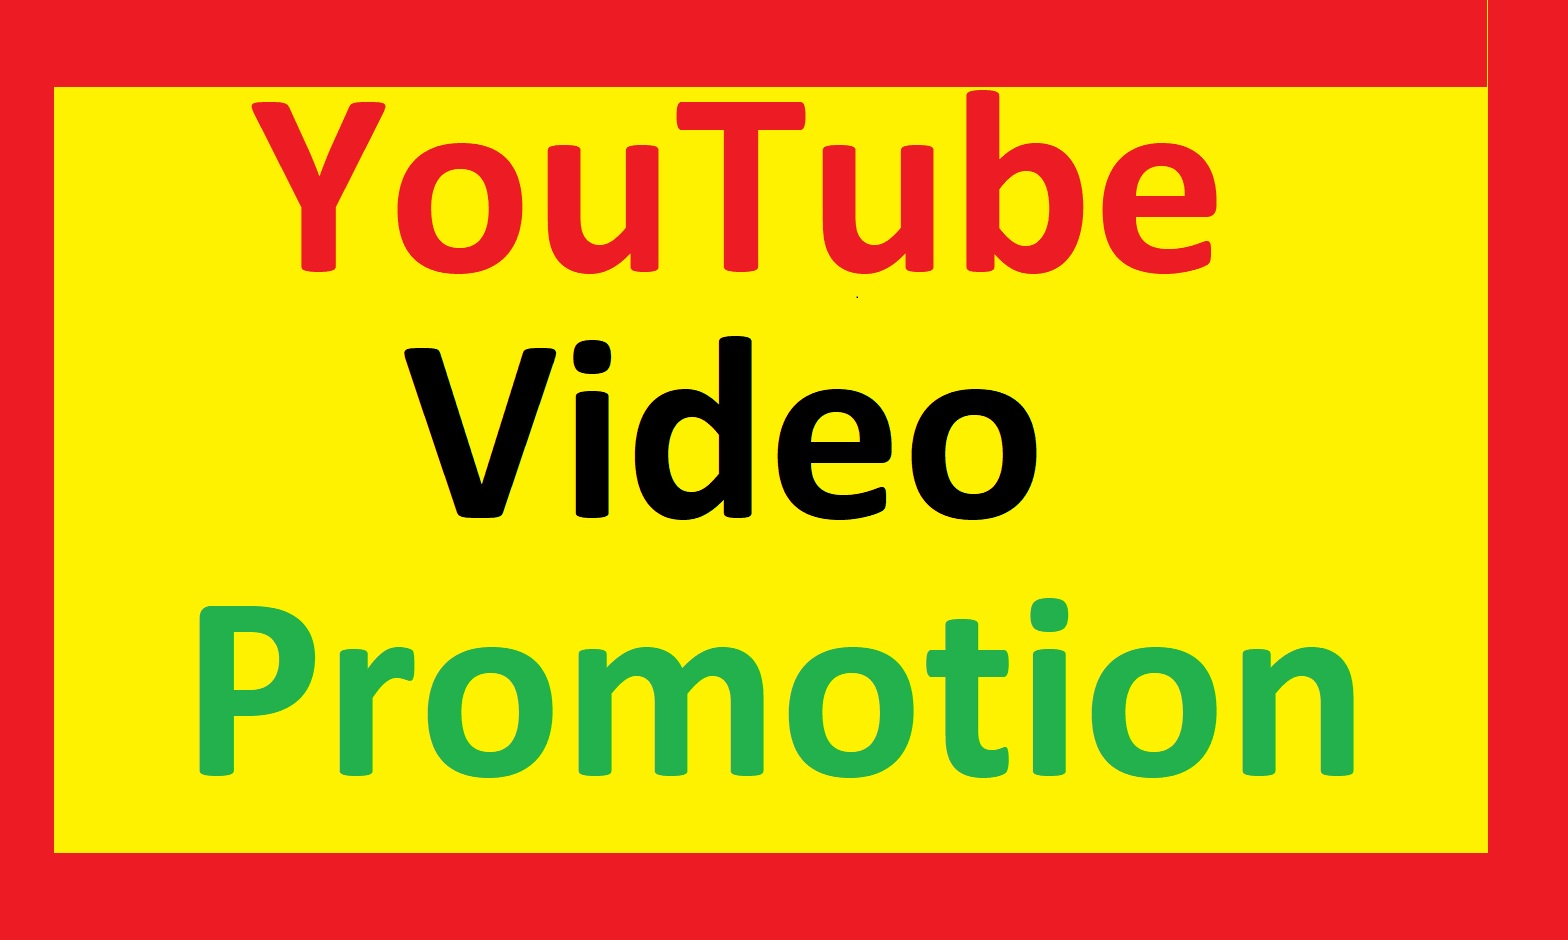 Good retention YouTube video promotion for your video